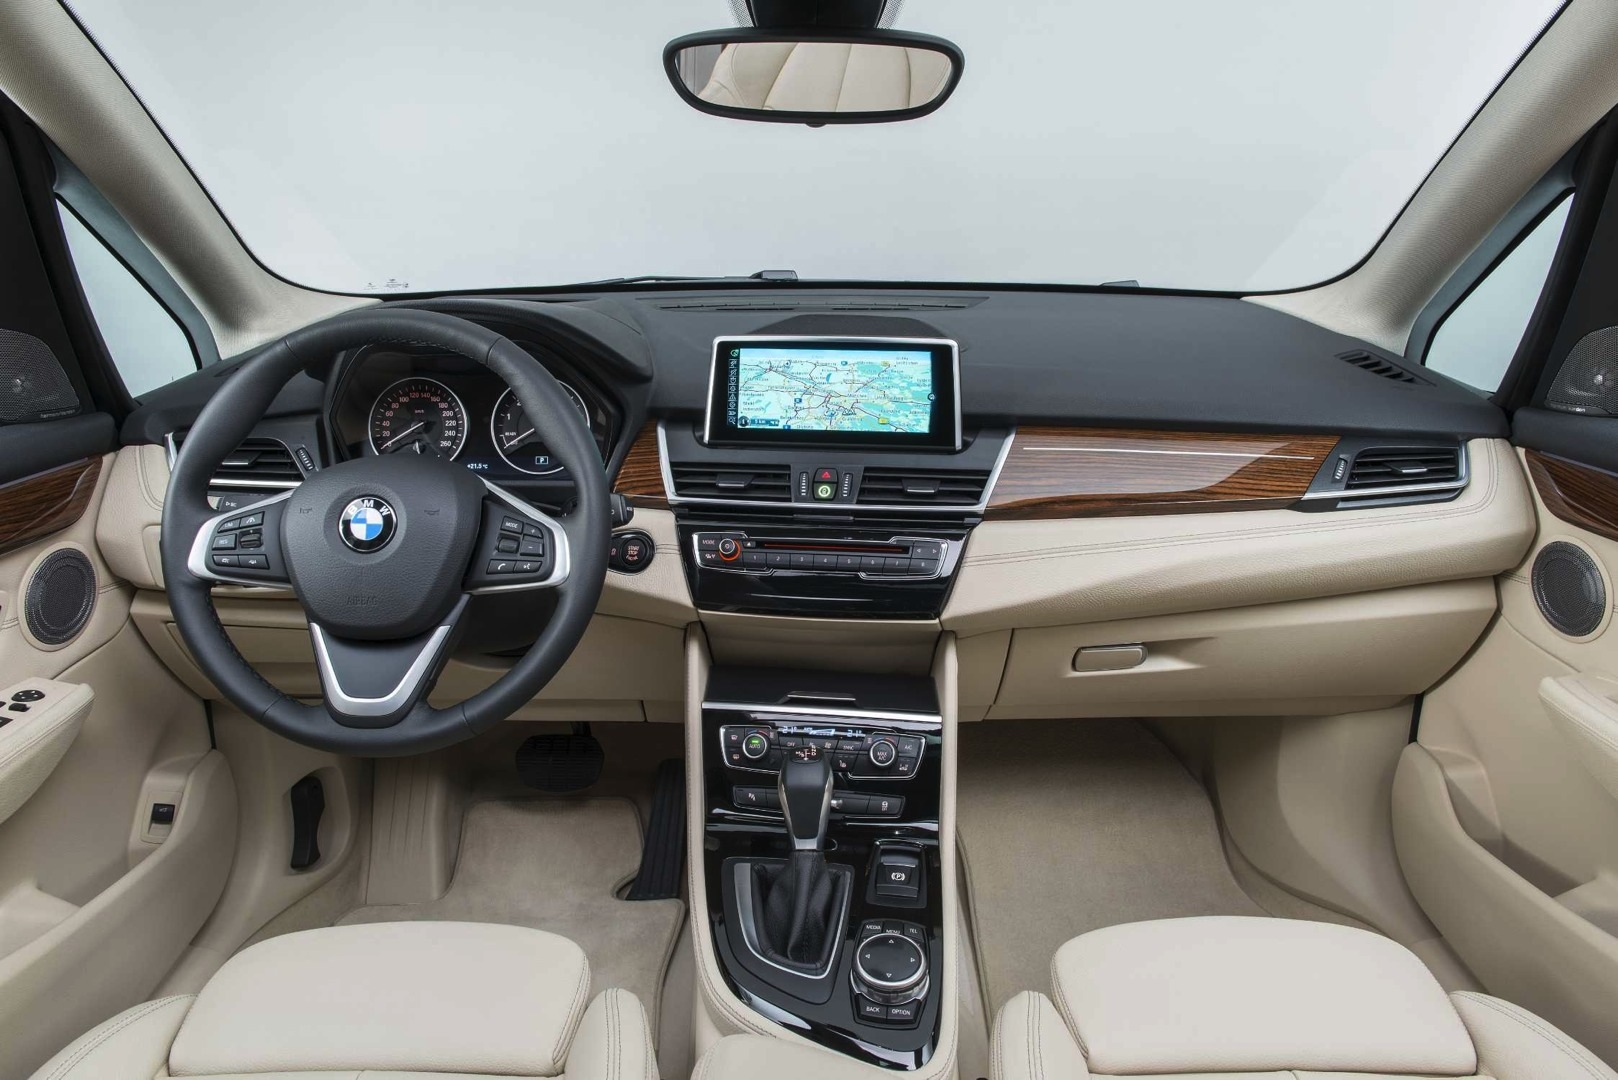 Astonishing The 2 Series Active Tourer The First Bmw In Ages With A New Download Free Architecture Designs Jebrpmadebymaigaardcom